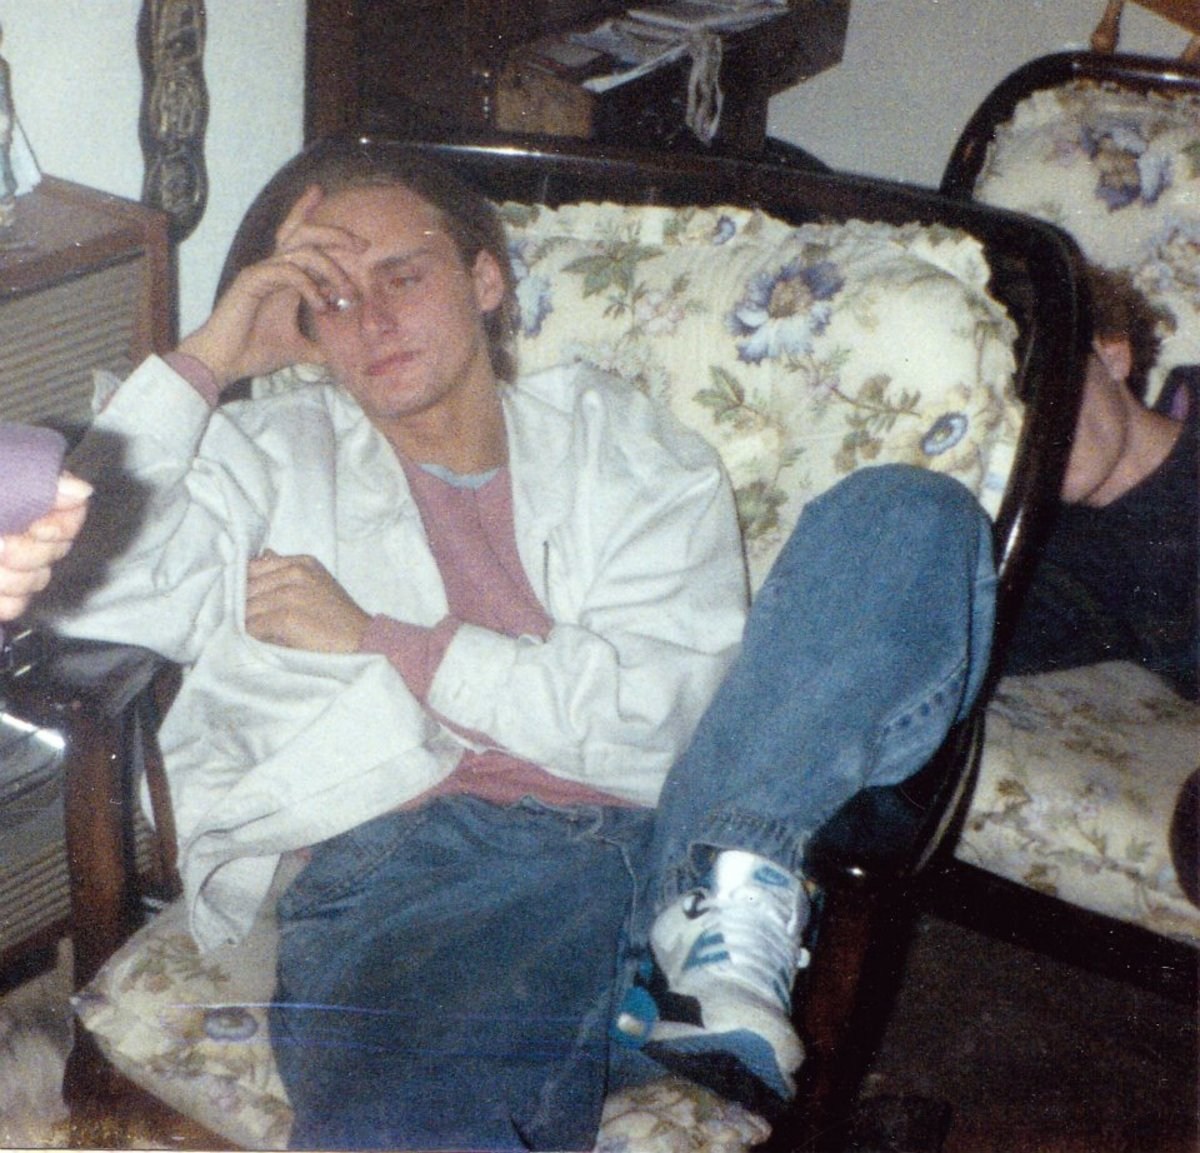 Nicky chilling out at a party (1991).